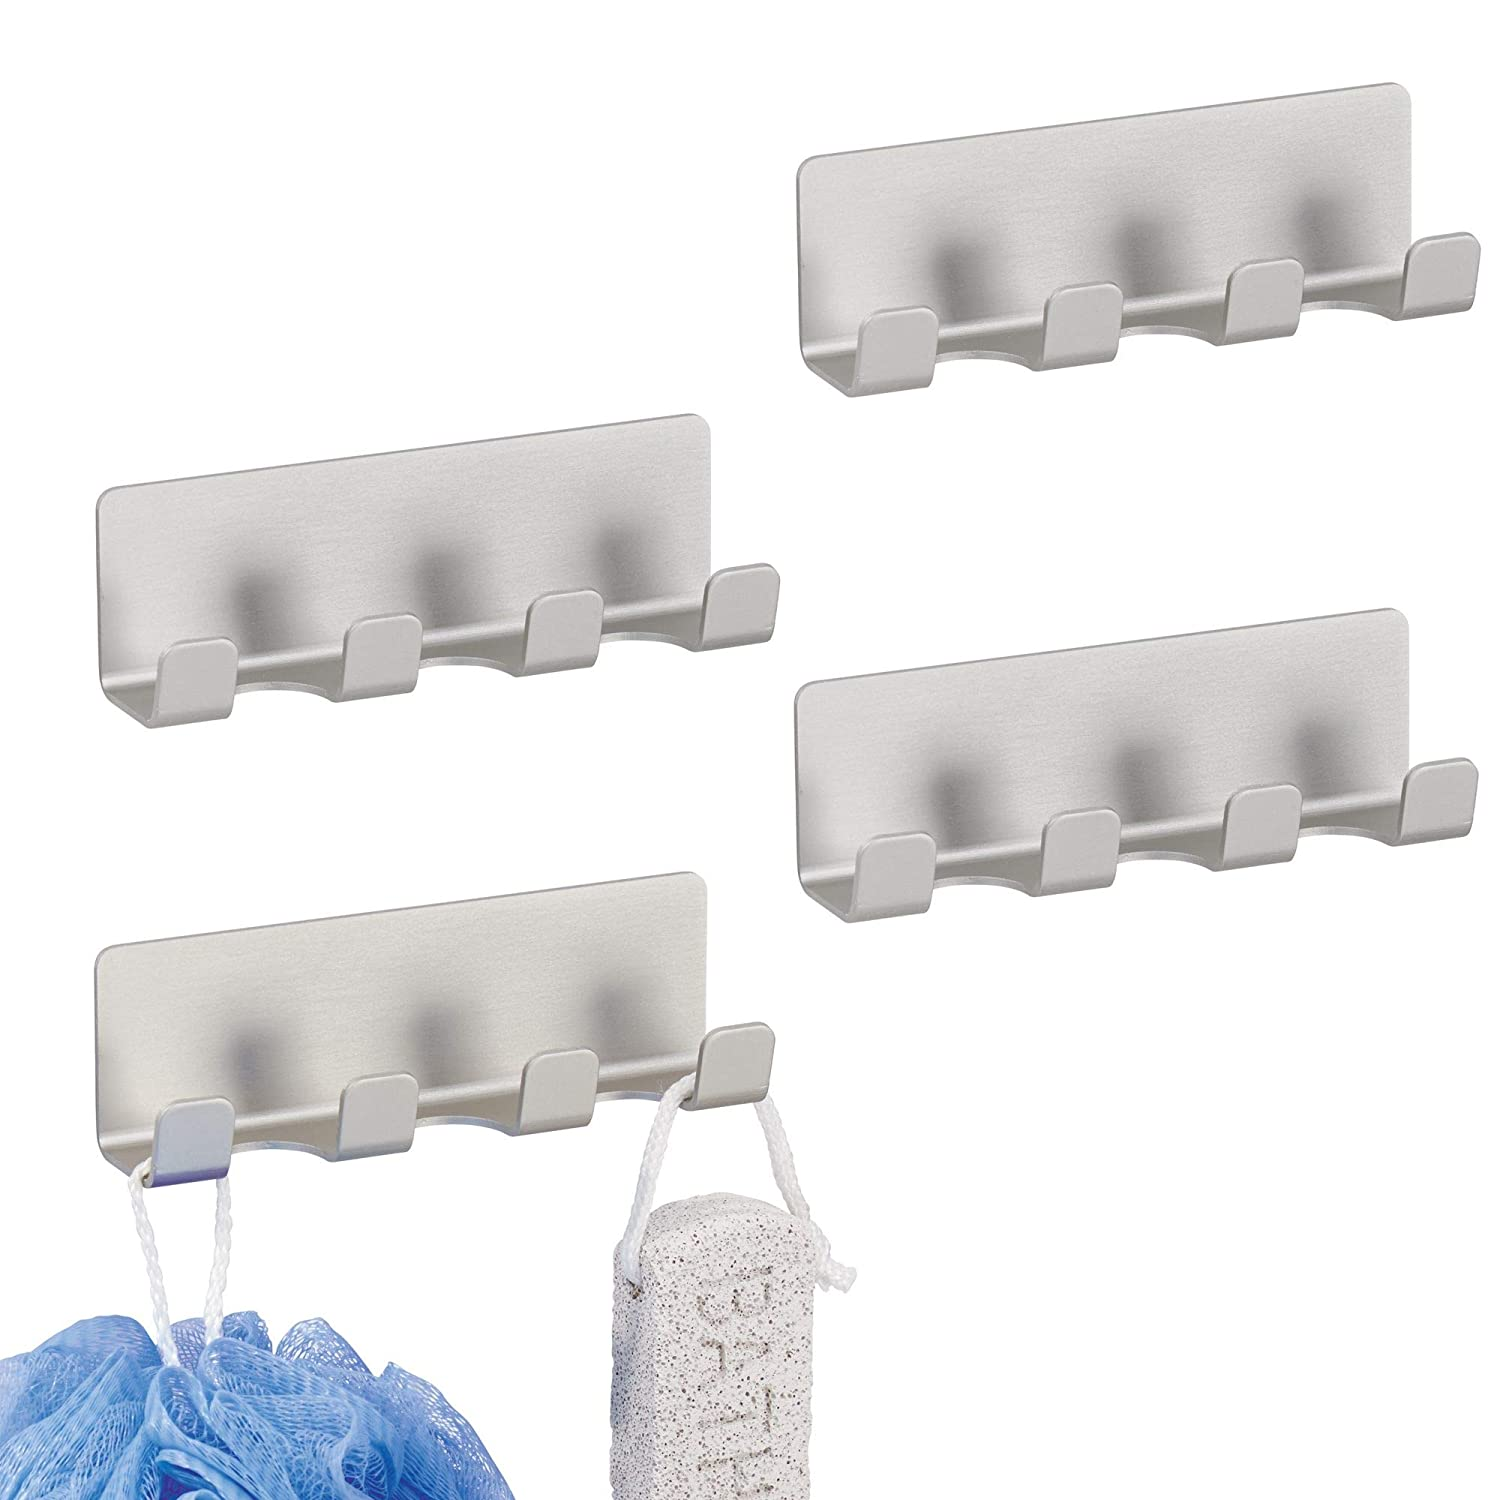 mDesign AFFIXX Strong Self-Adhesive Wall Mount Rustproof Aluminum Metal Bathroom Shower Hooks Racks Organizer for Loofahs, Mens and Womens Razors - Pack of 2, Silver MetroDecor COMIN18JU082570